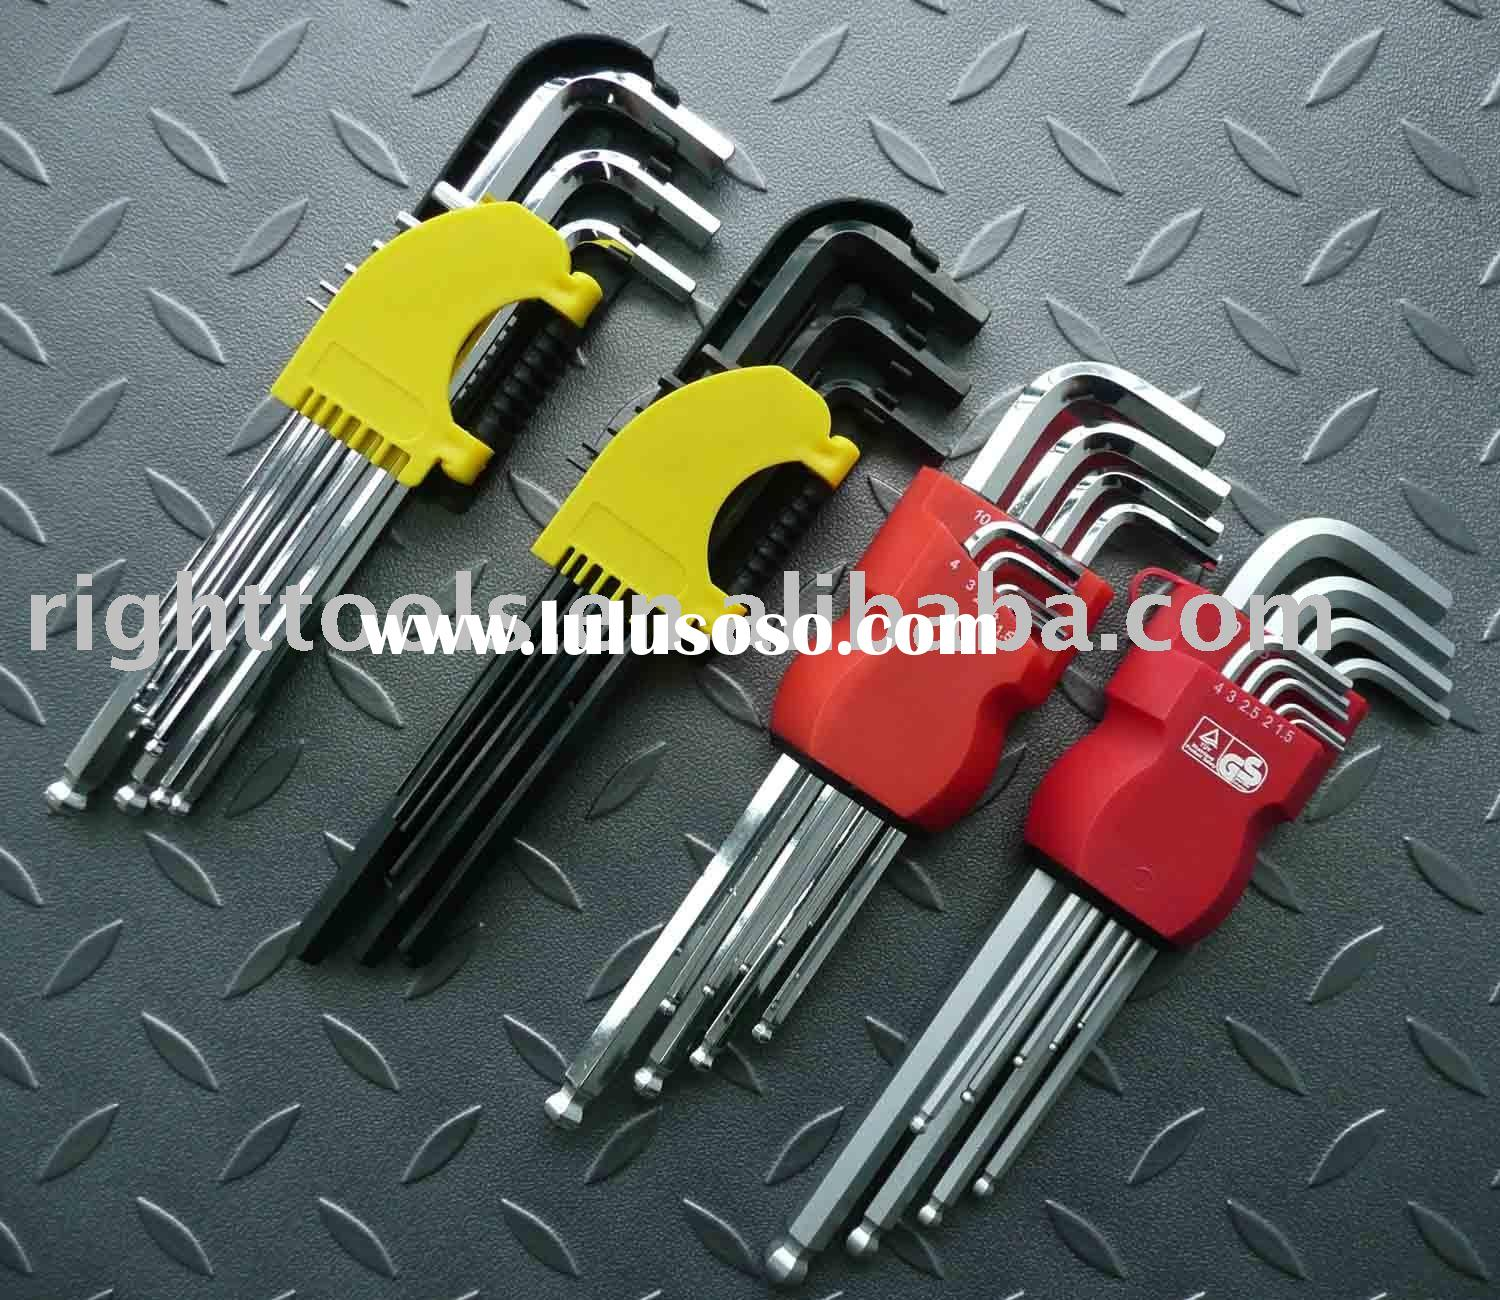 9pc Extra Long arm hex key set/allen key/wrench tool